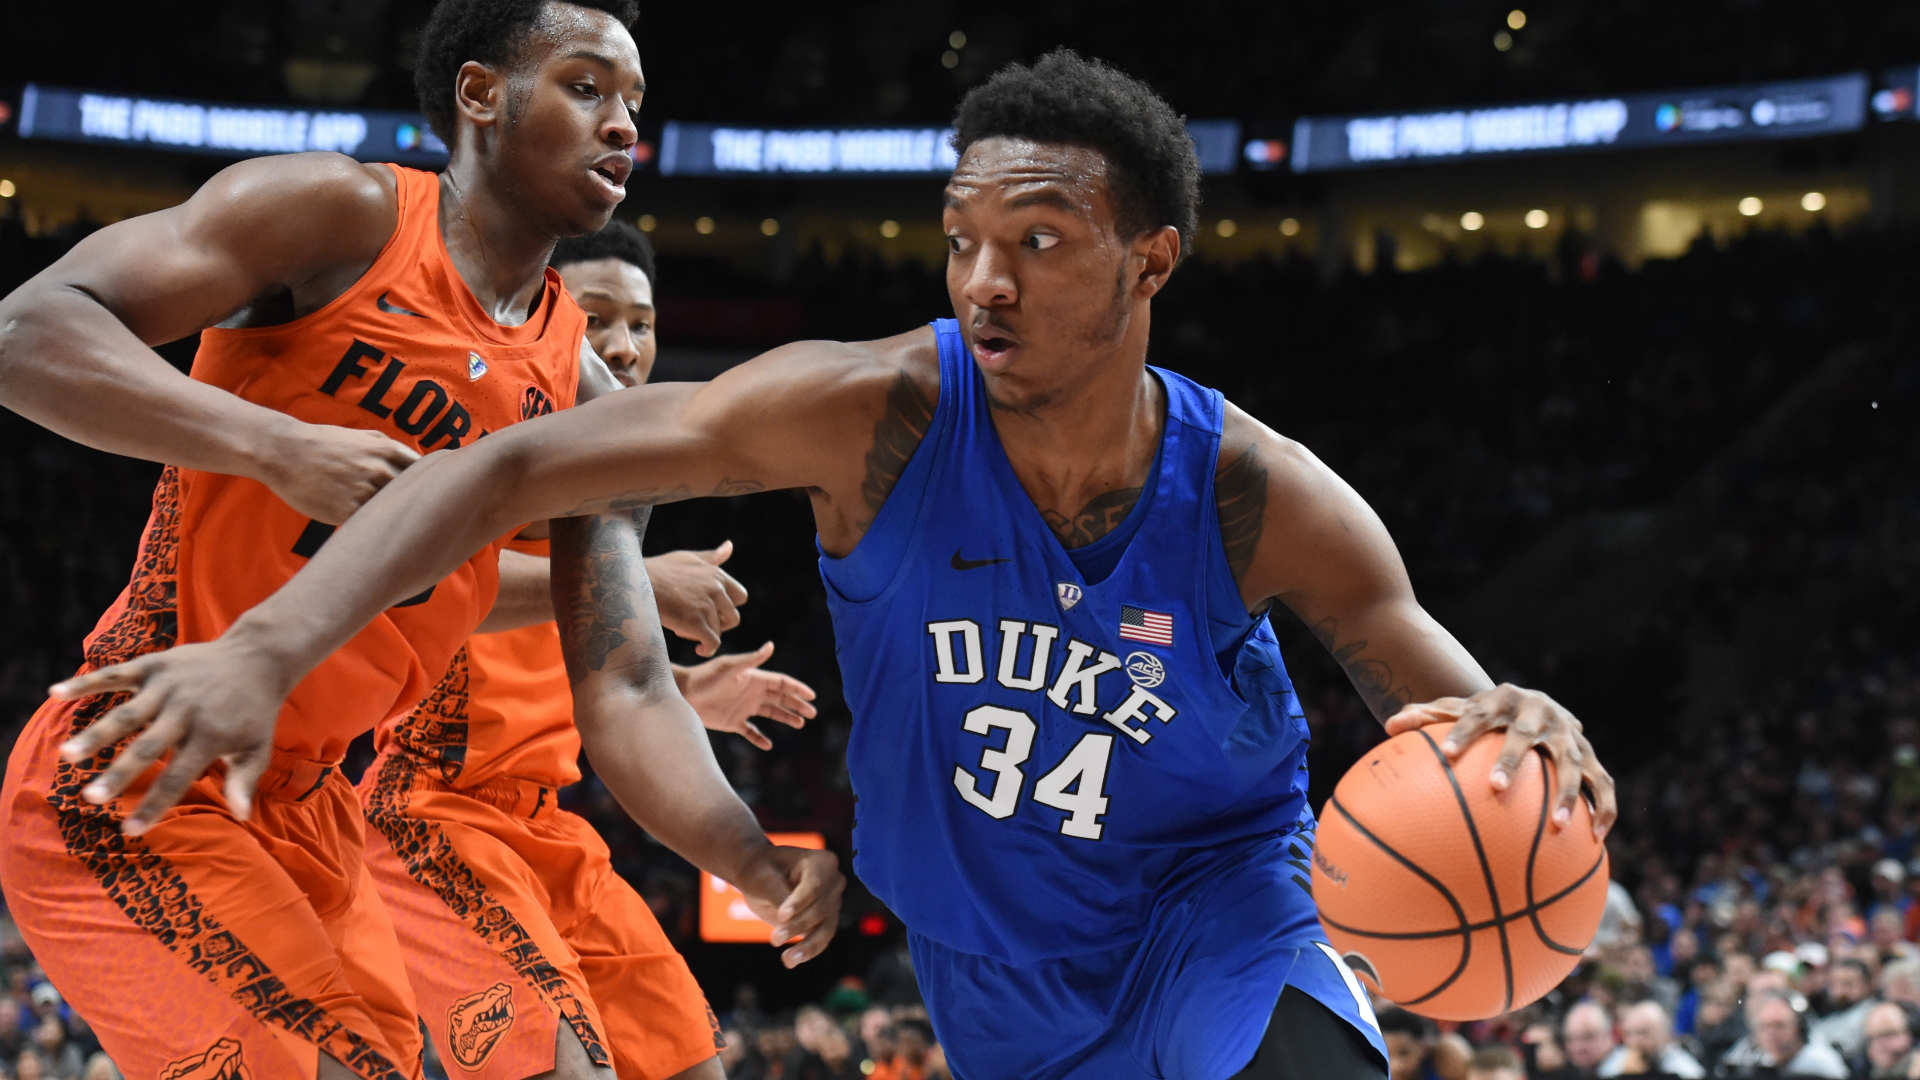 Former Duke center Wendell Carter's mom compares NCAA rules to slavery